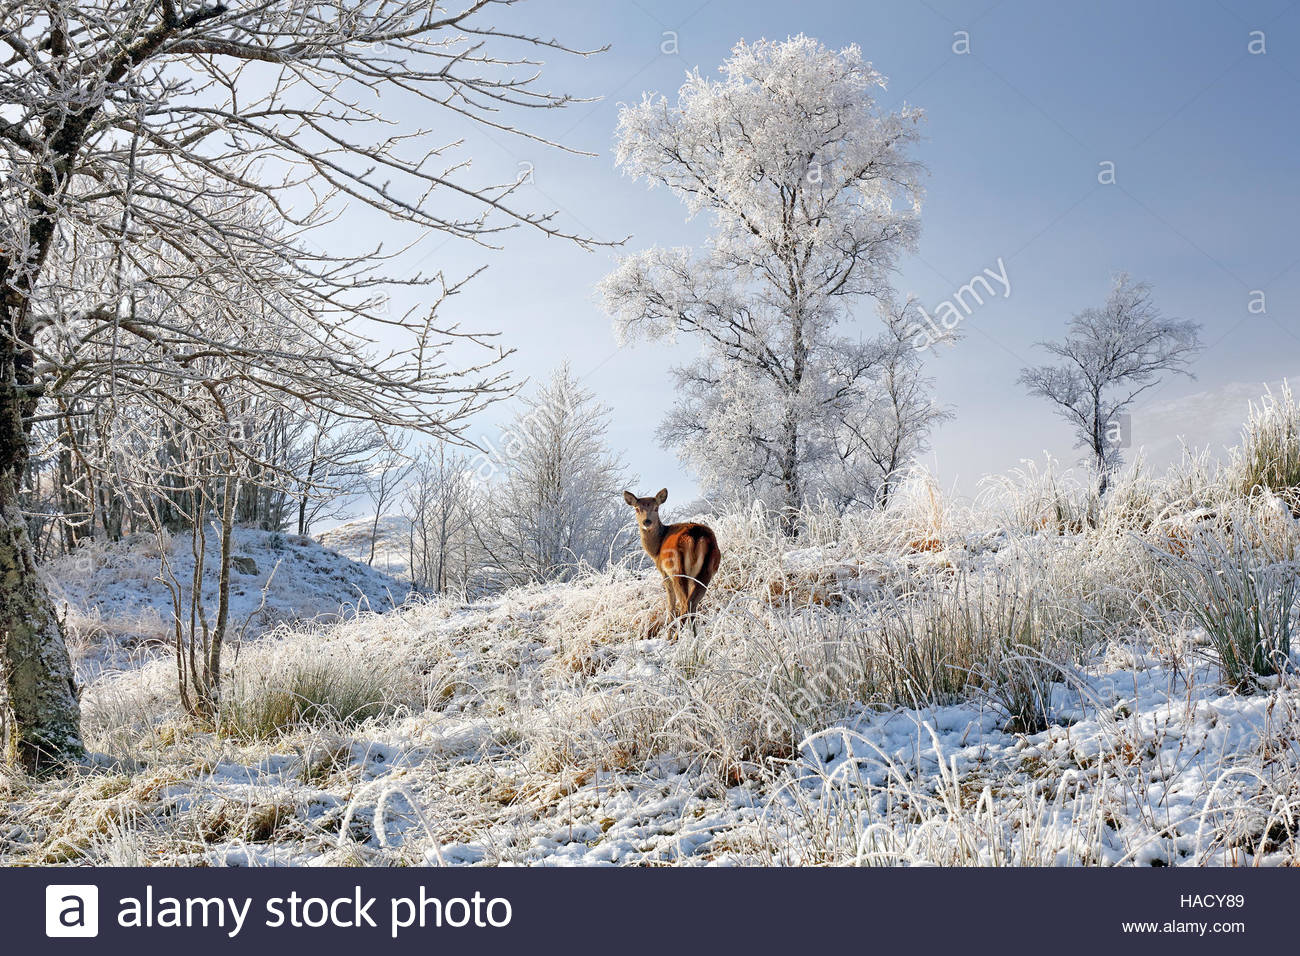 A lone Red Deer hind on a snow, mist and frost covered winter landscape in the Scottish highlands. Stock Photo